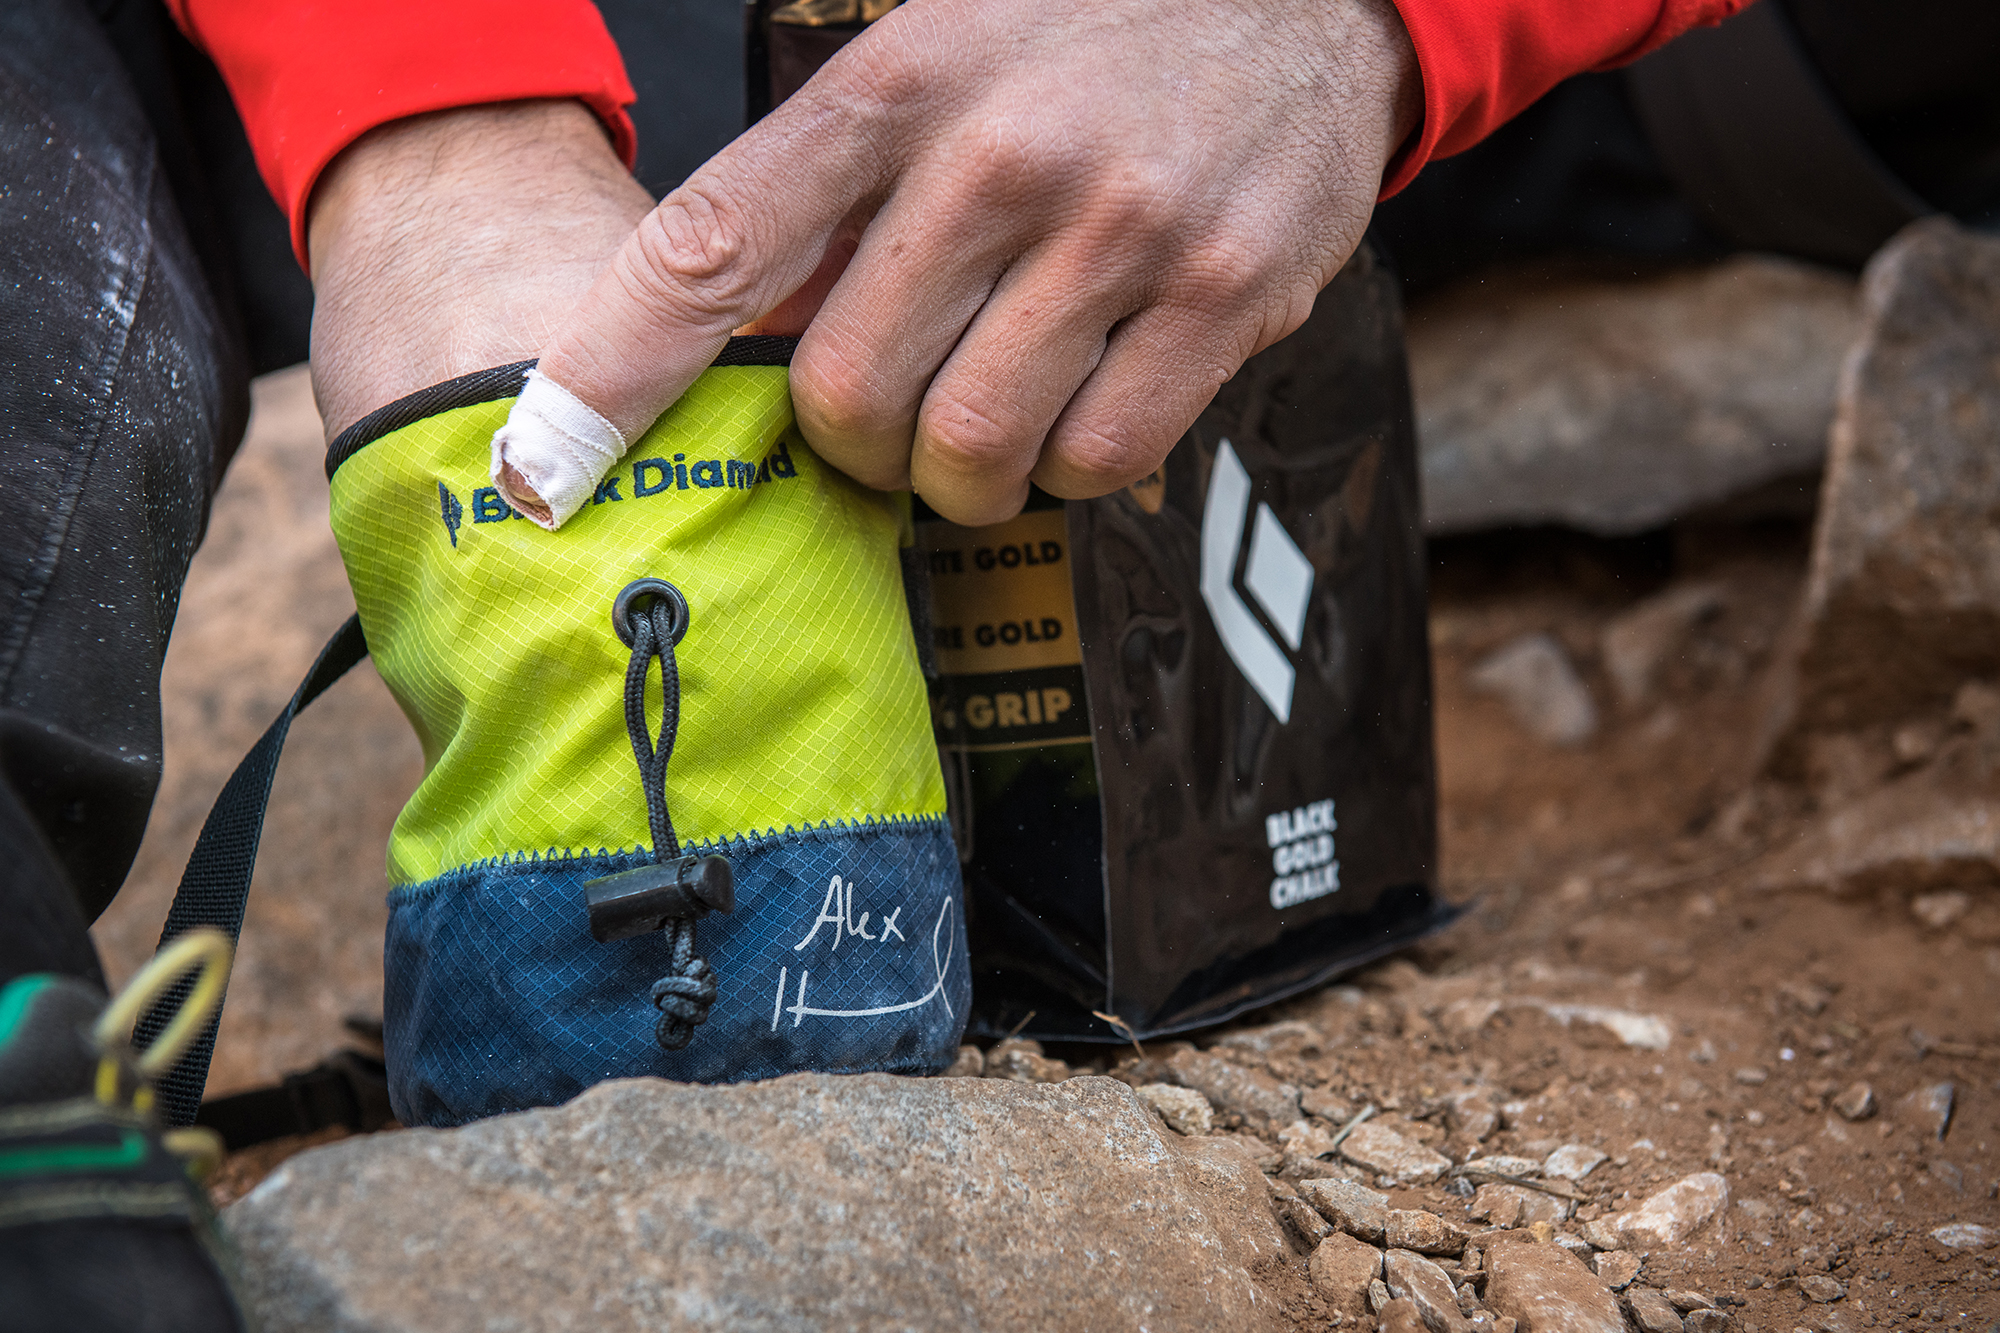 Black Diamond Solution Klettergurt Test : Black diamond präsentiert alex honnold limited edition